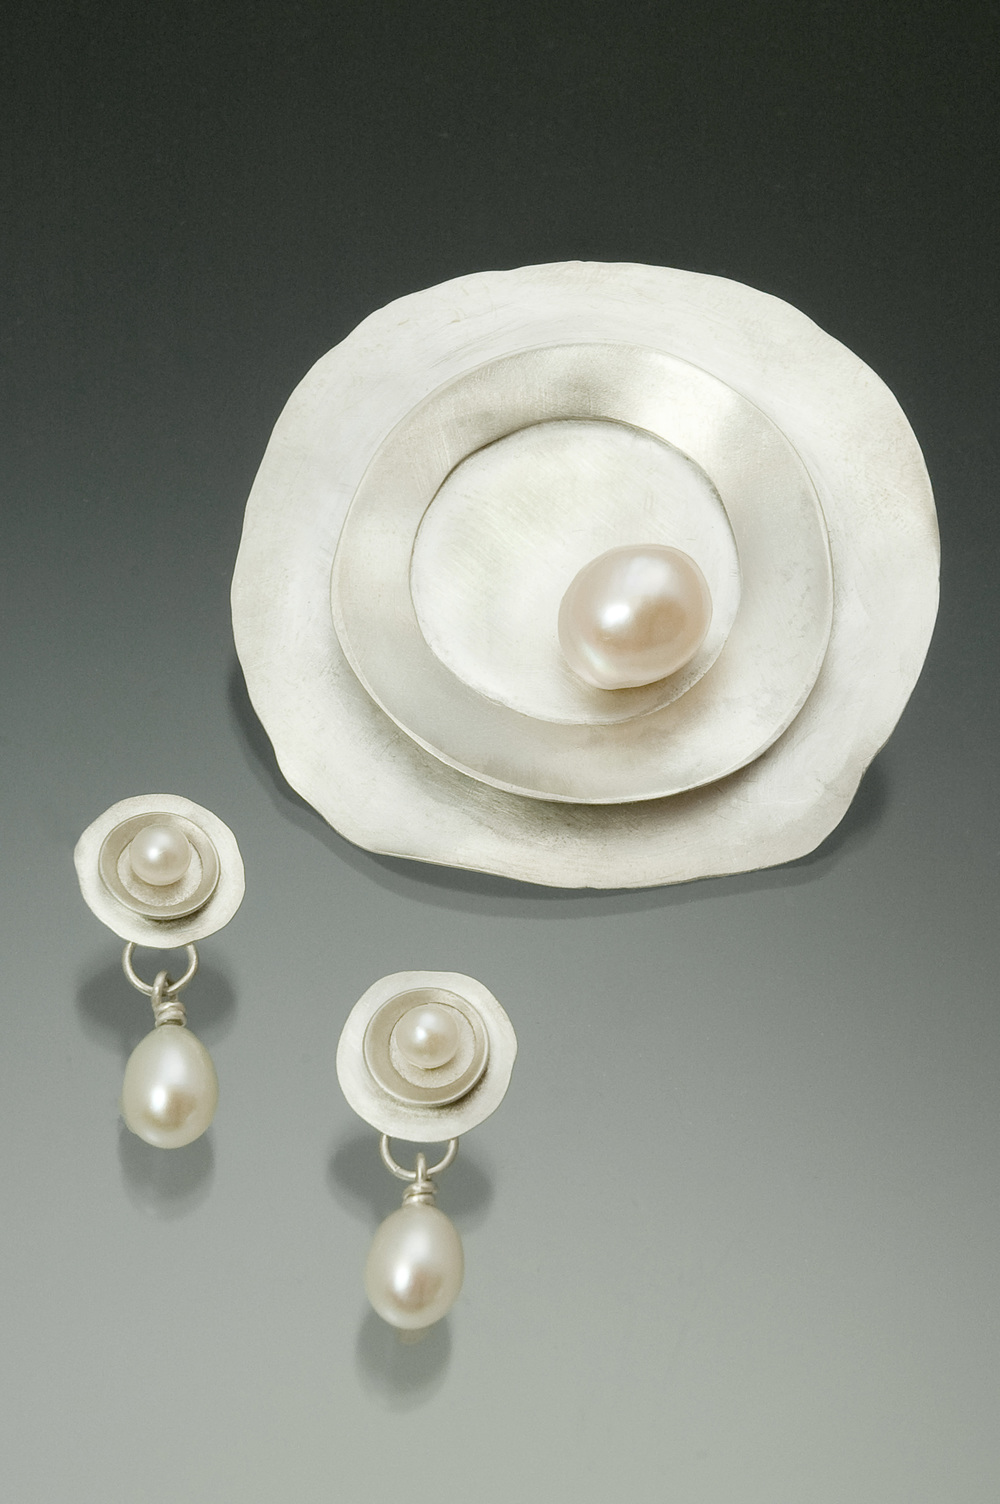 Earrings & Brooch.  Sterling silver with cultured freshwater pearls